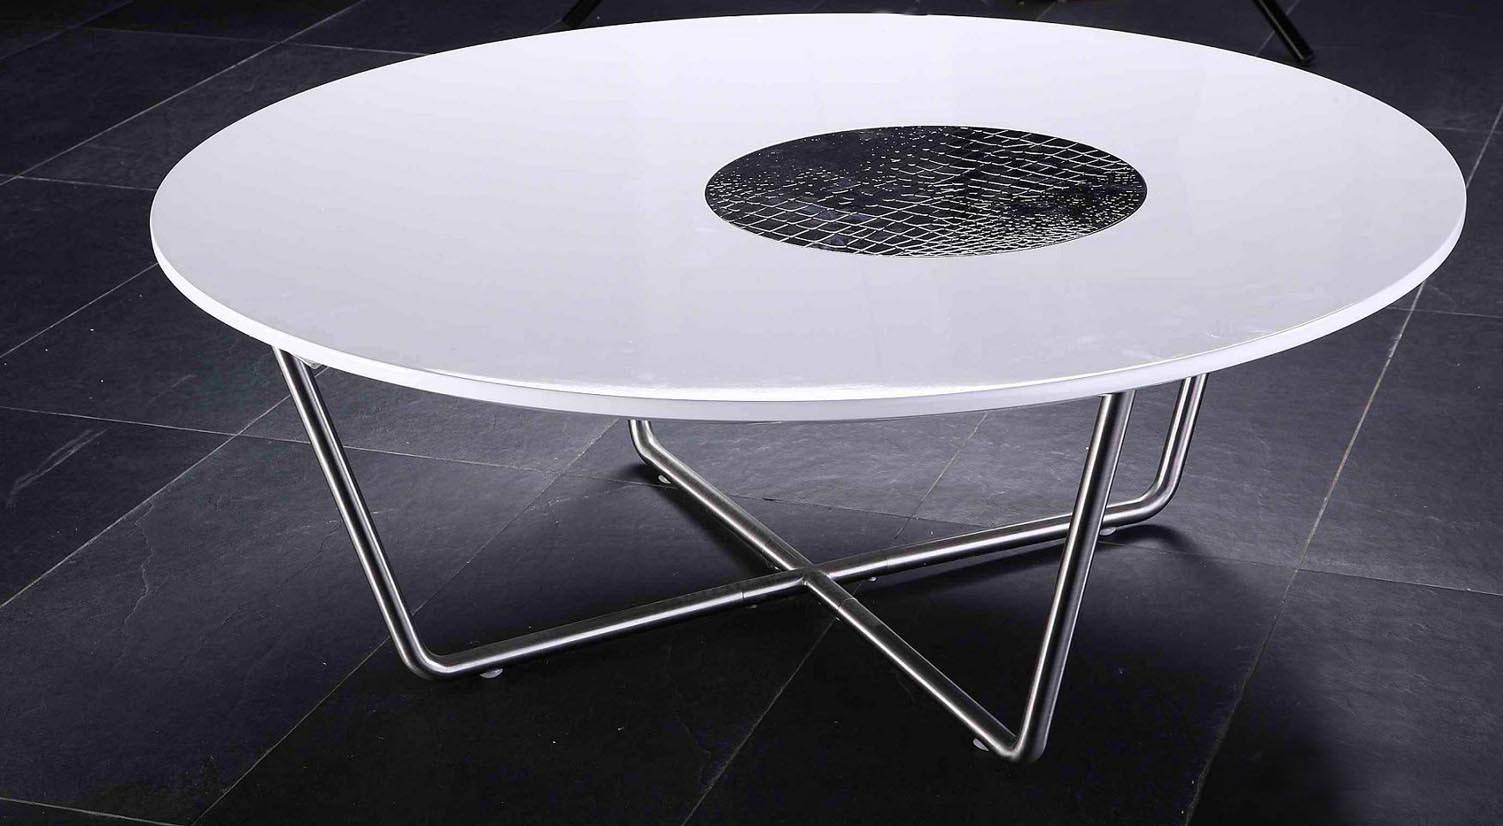 Armani Round Coffee Table regarding White Circle Coffee Tables (Image 3 of 30)